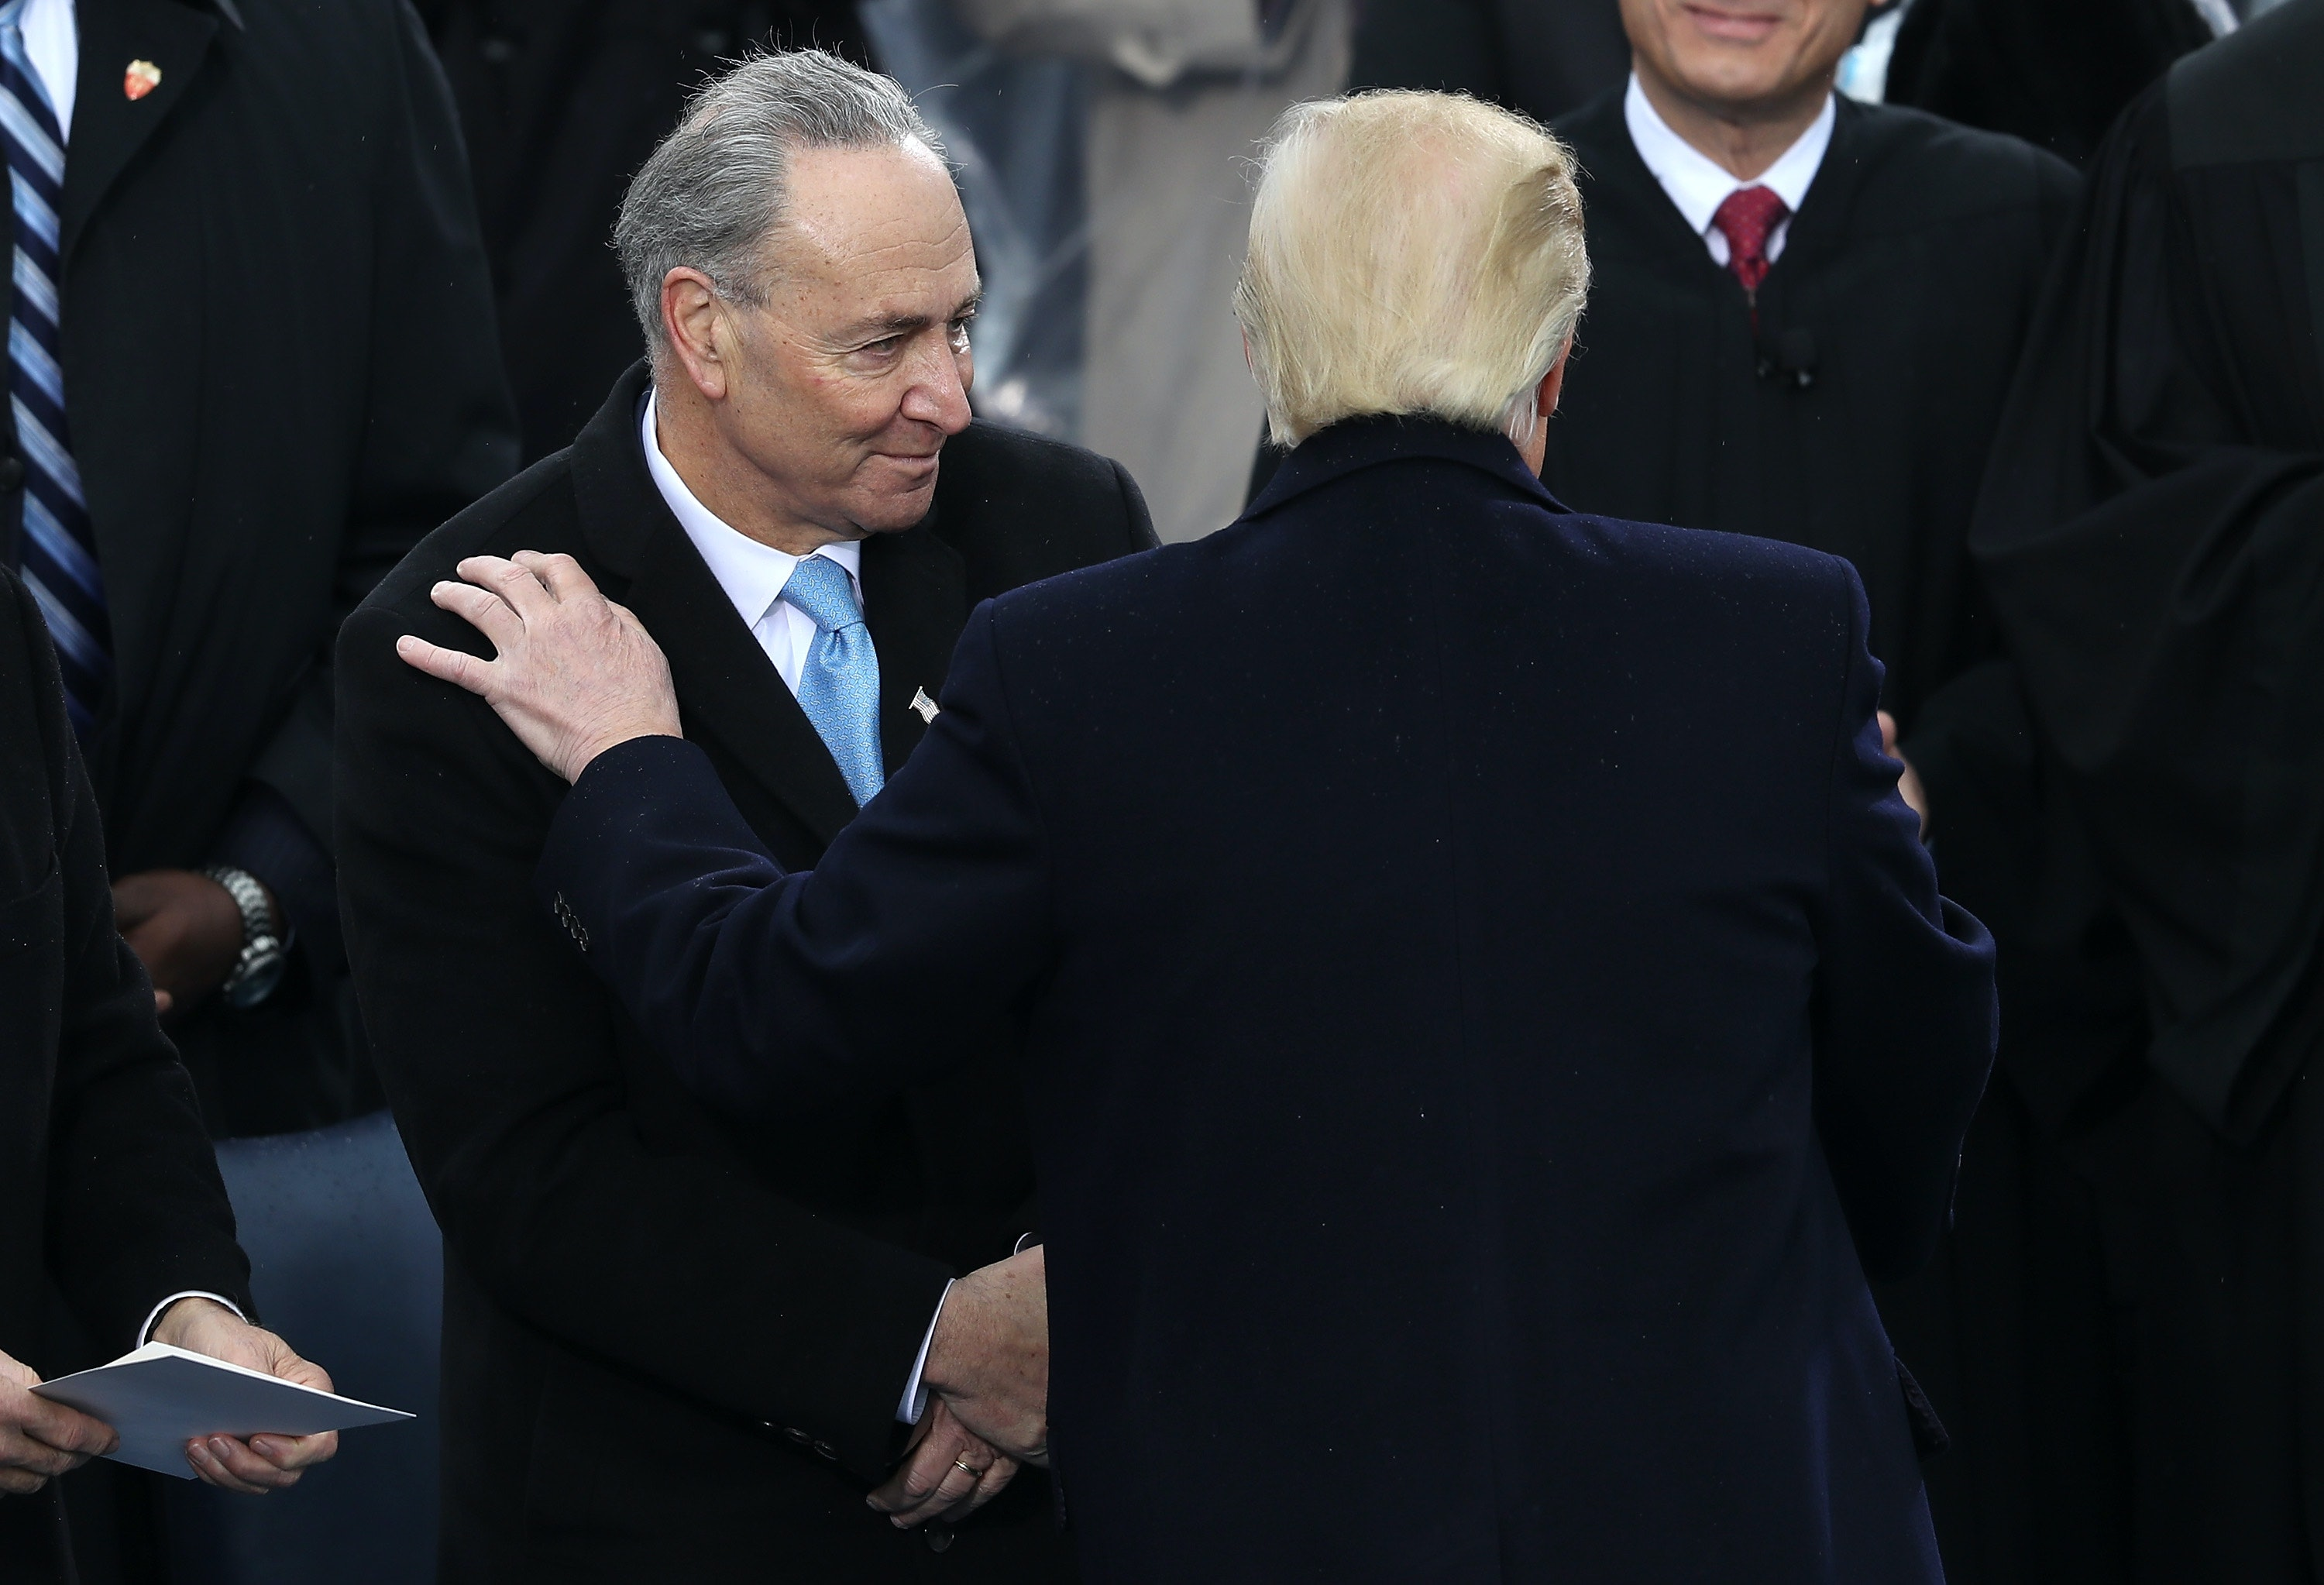 5 Things You Might Not Know About Chuck Schumer Аннотация к книге iris weinshall. https www mic com articles 166177 5 things you might not know about chuck schumer